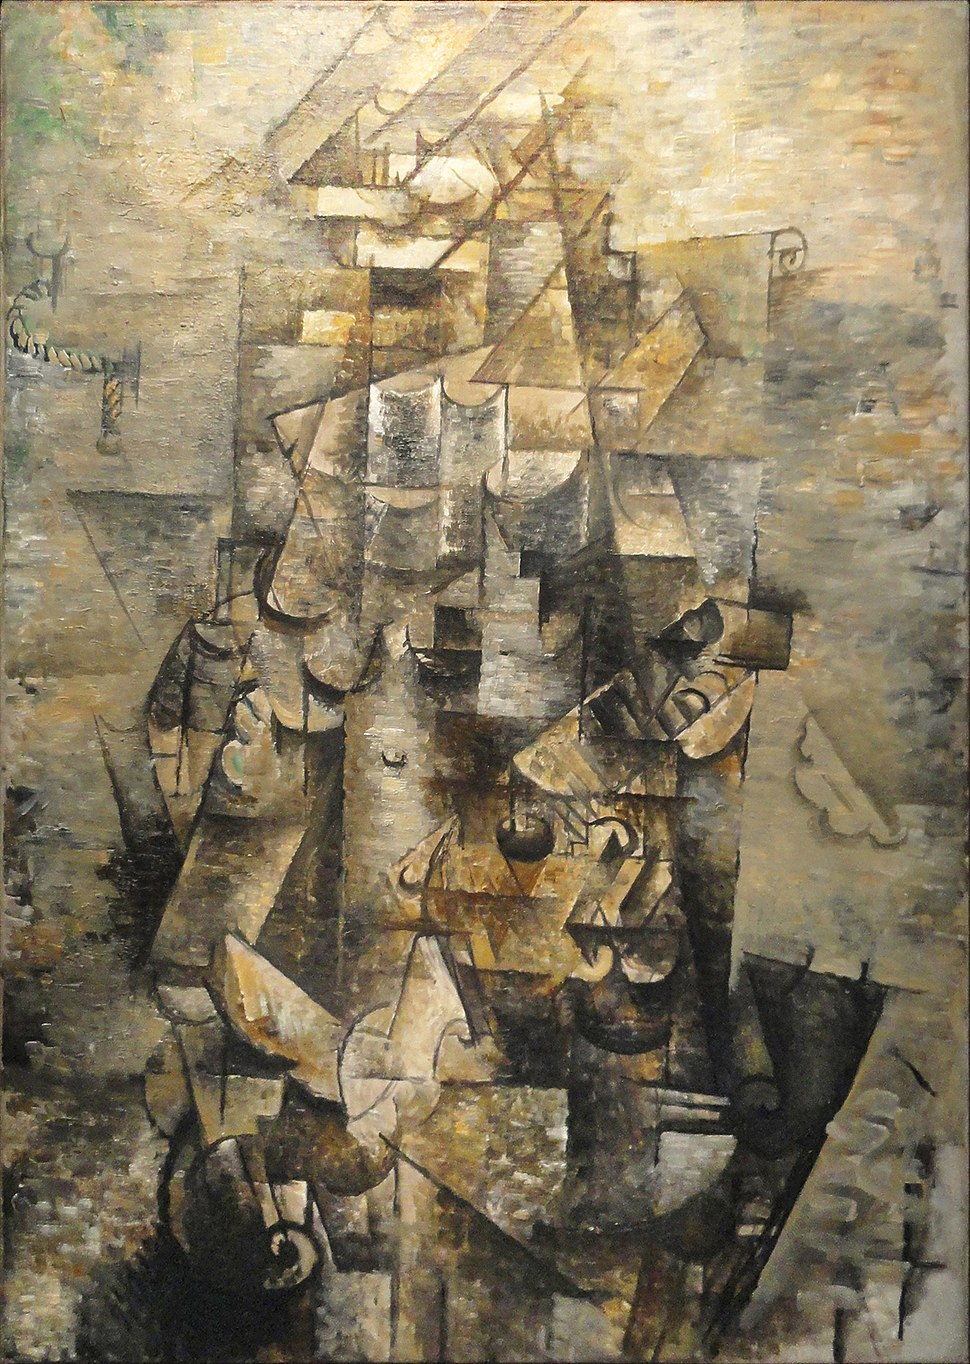 Georges Braque, 1911-12, Man with a Guitar (Figure, L'homme à la guitare), oil on canvas, 116.2 x 80.9 cm (45.75 x 31.9 in), Museum of Modern Art, New York